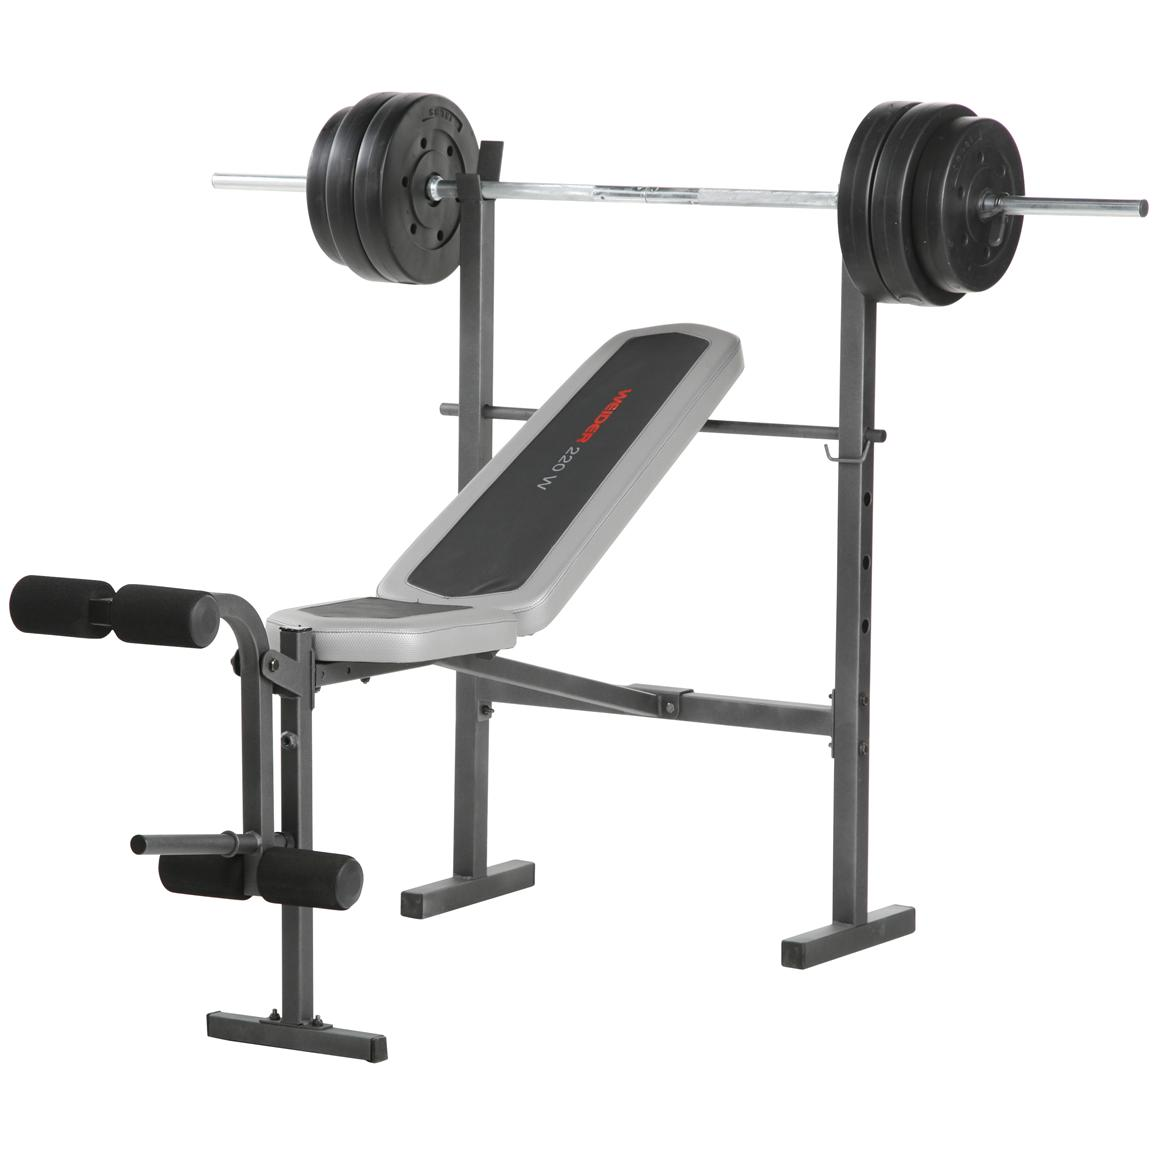 Weider 220w combo bench with 80 lb weight set 189026 at sportsman 39 s guide Weight set and bench